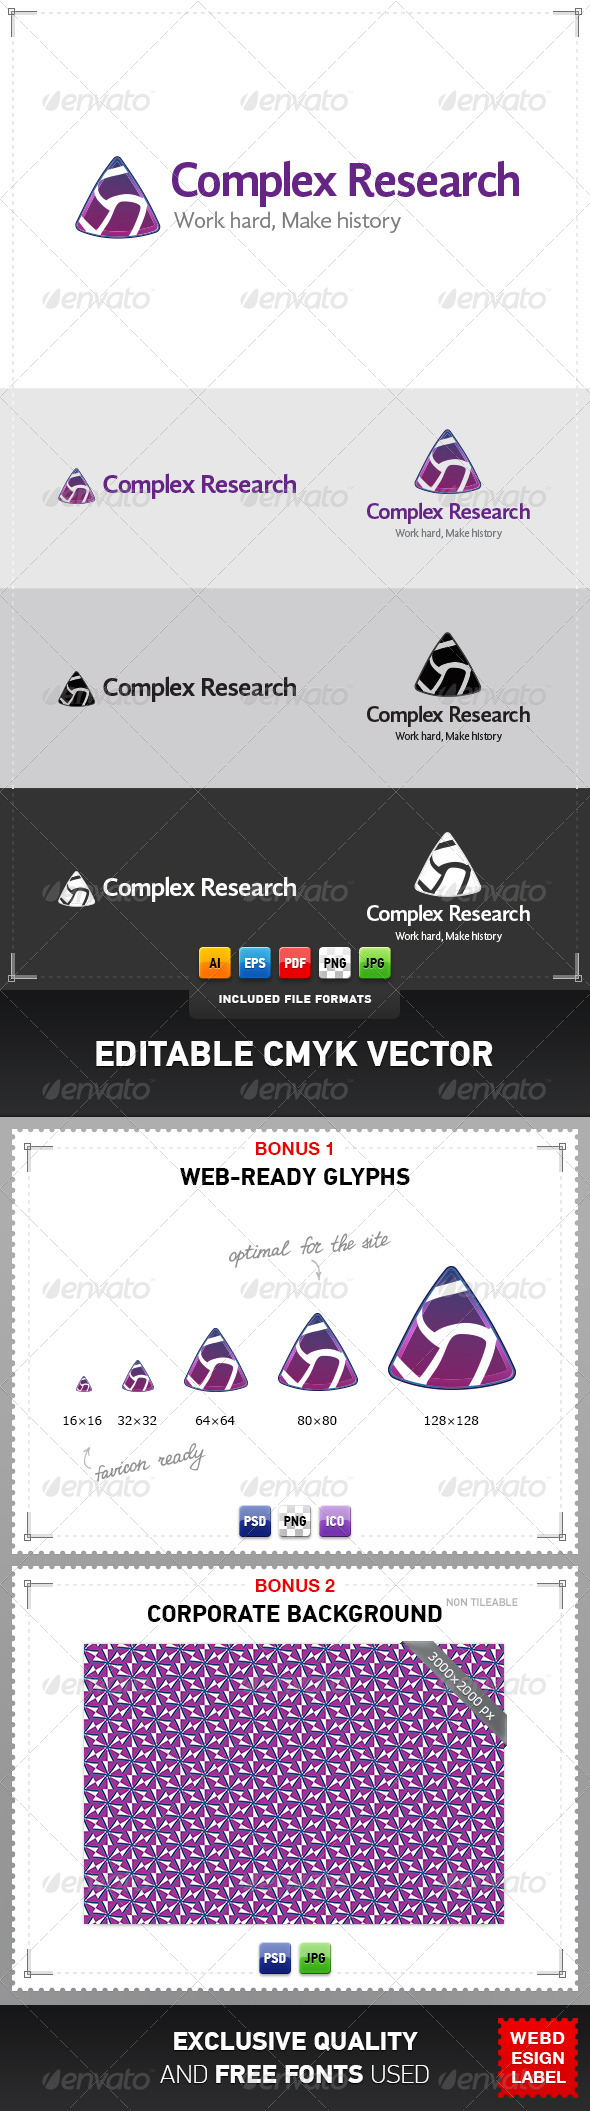 Complex Research Logo - Abstract Logo Templates